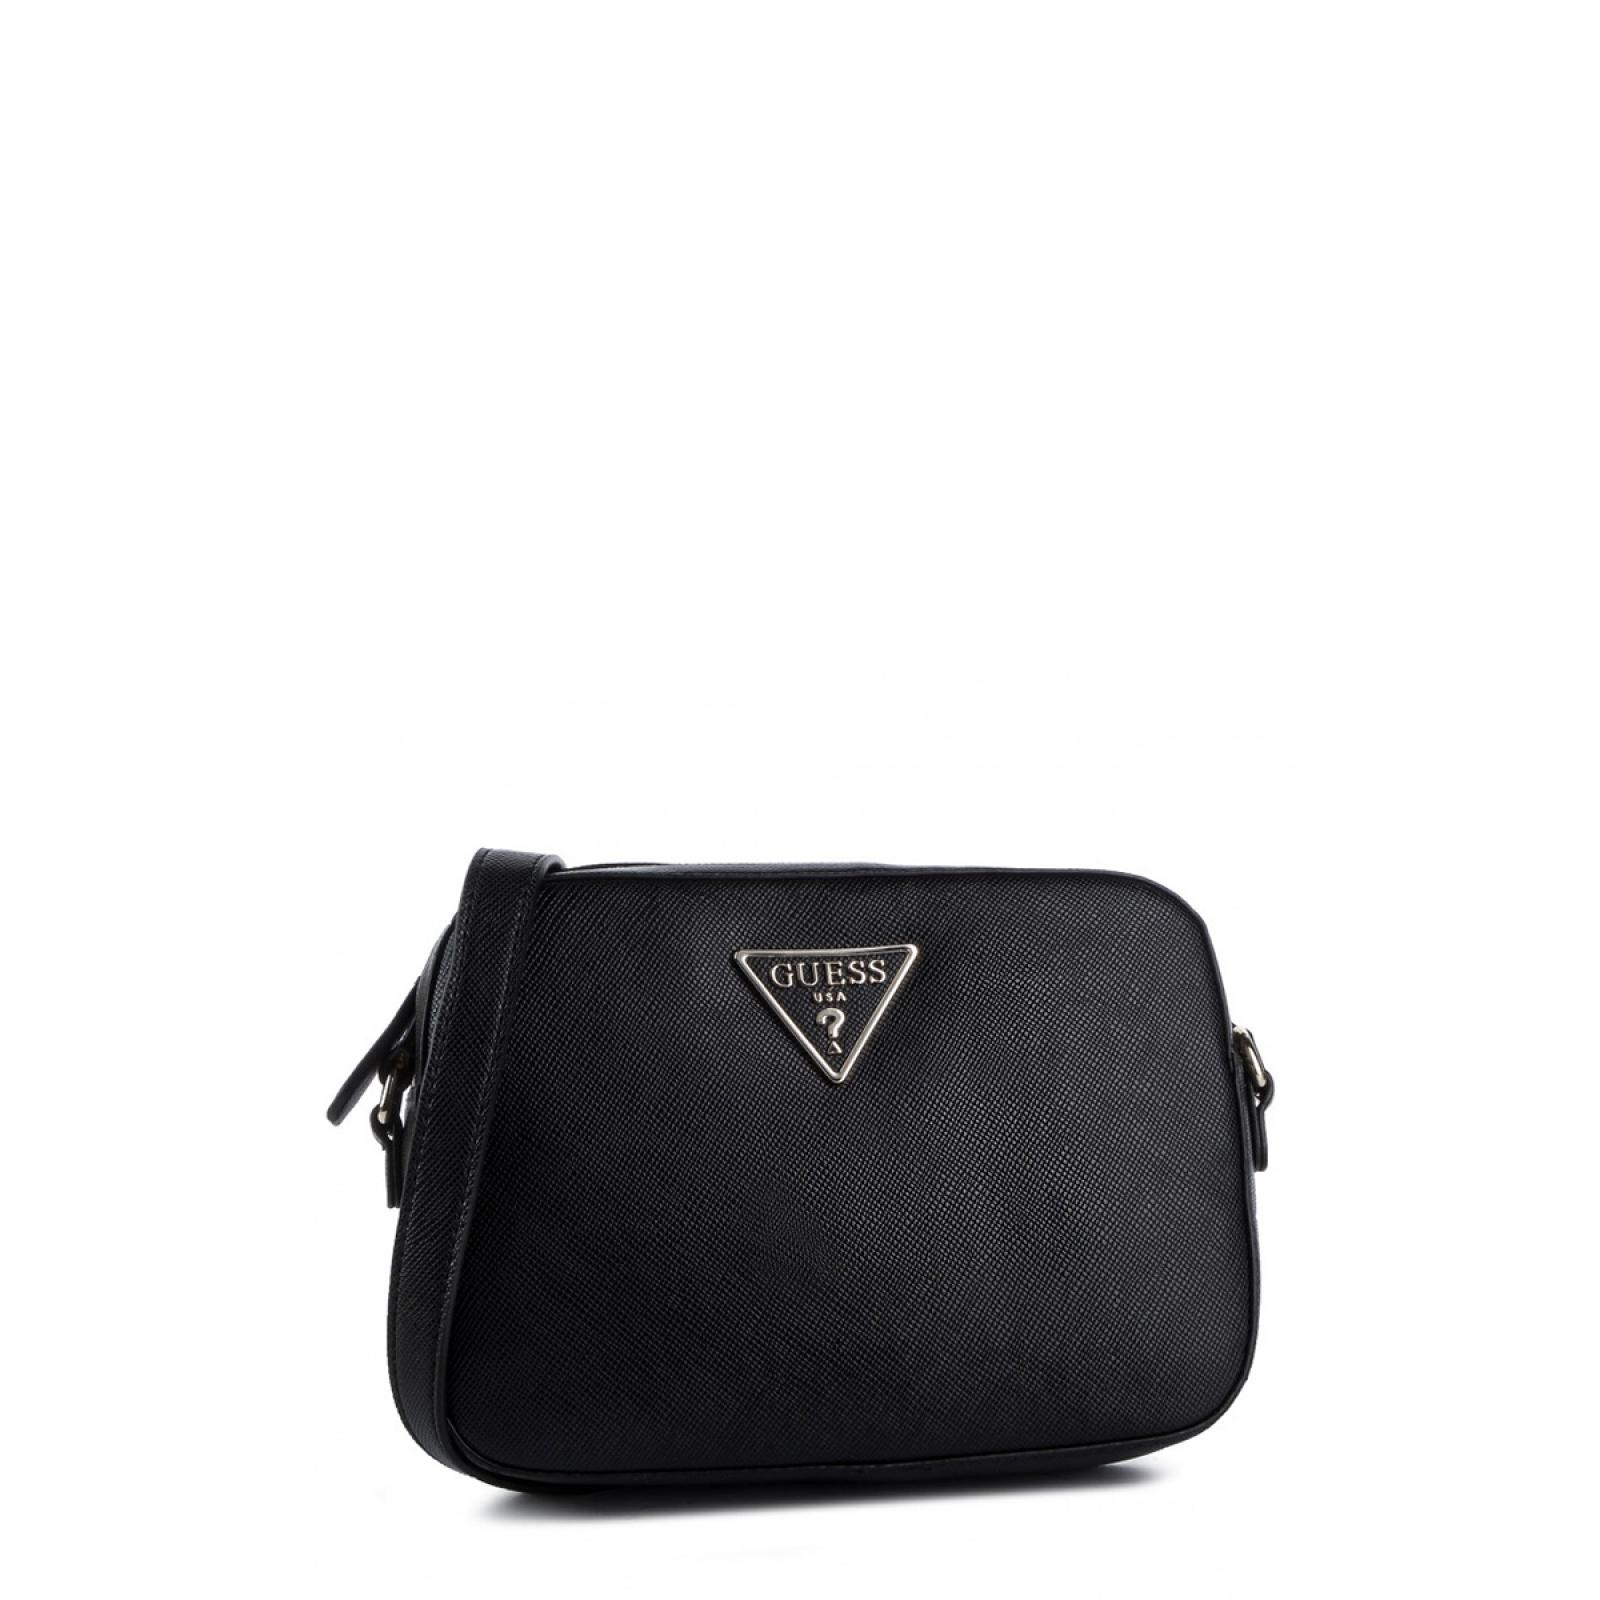 Guess Carys Crossbody Bag - 1